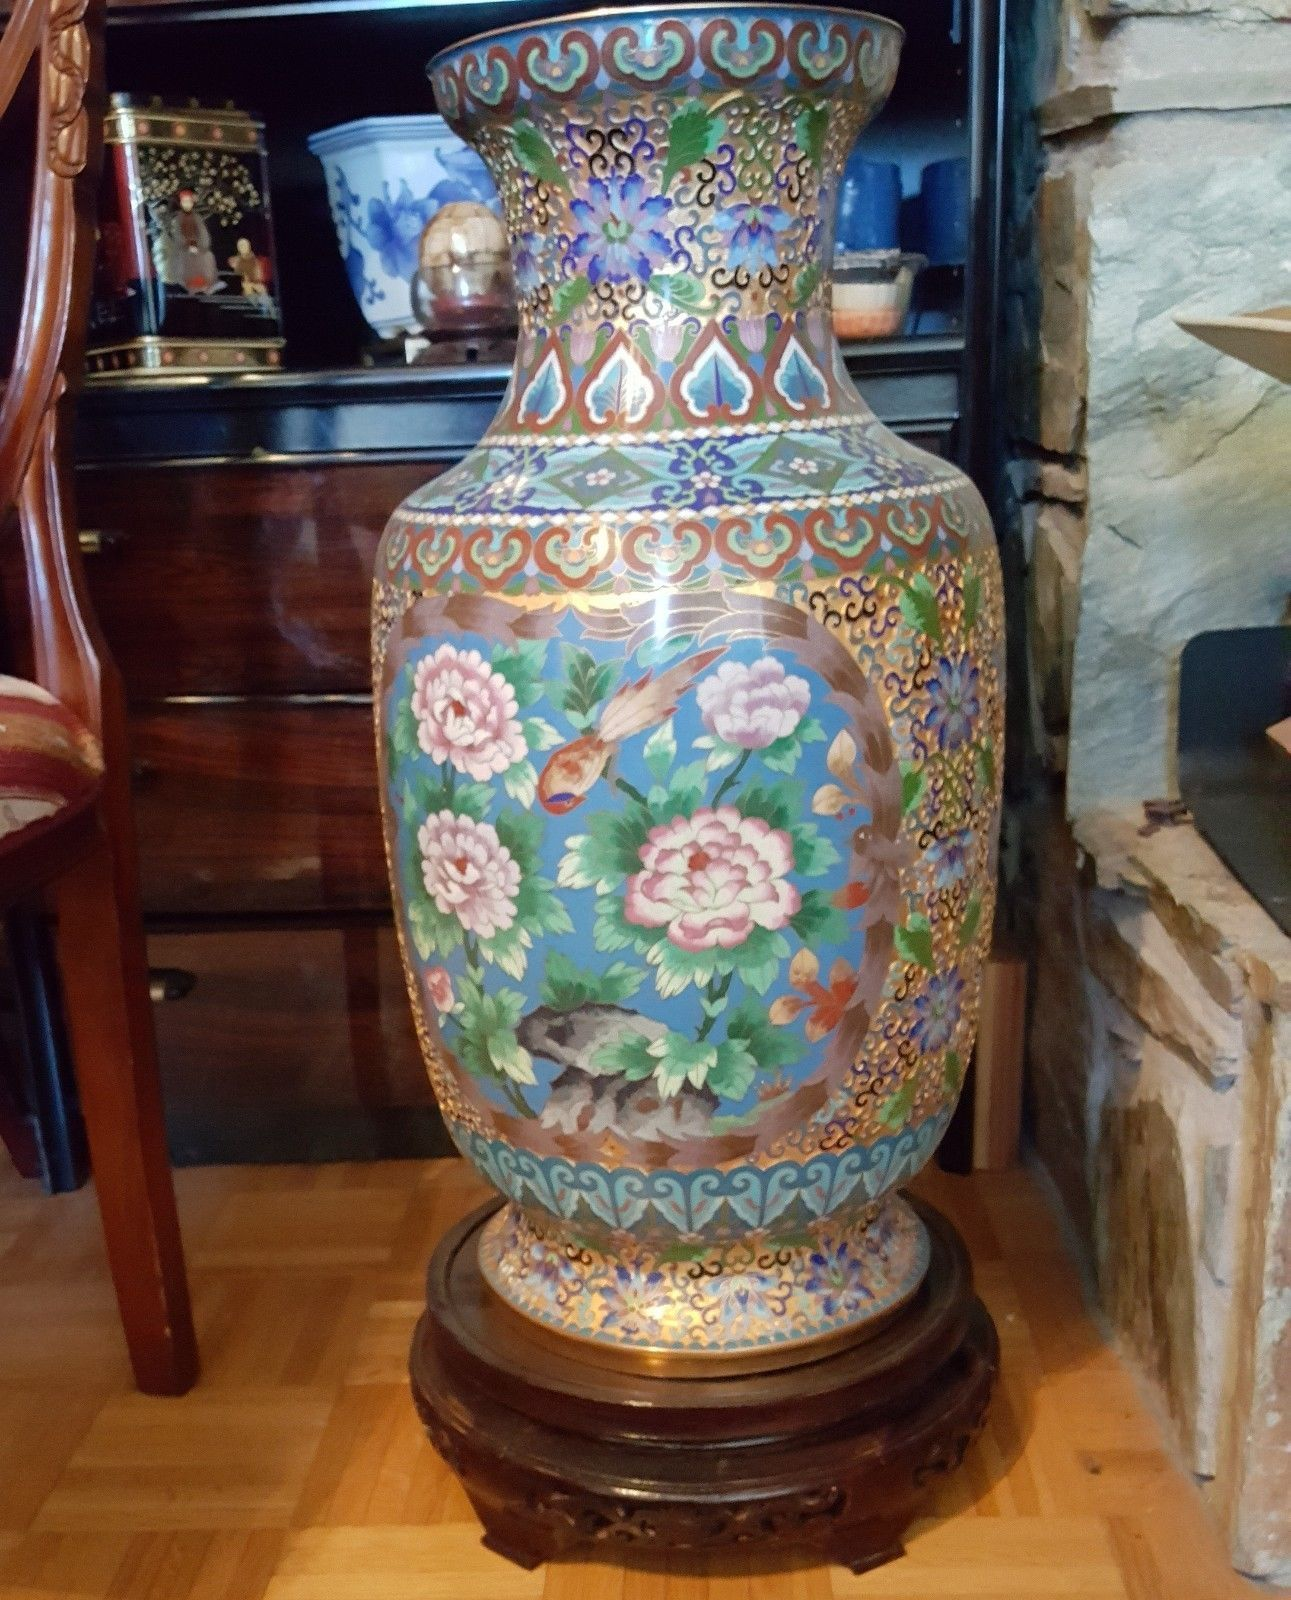 antiques gifts cloisonn large vase 25 tall rare chinese original antique collectors antique chinachristmas gift ideasantique